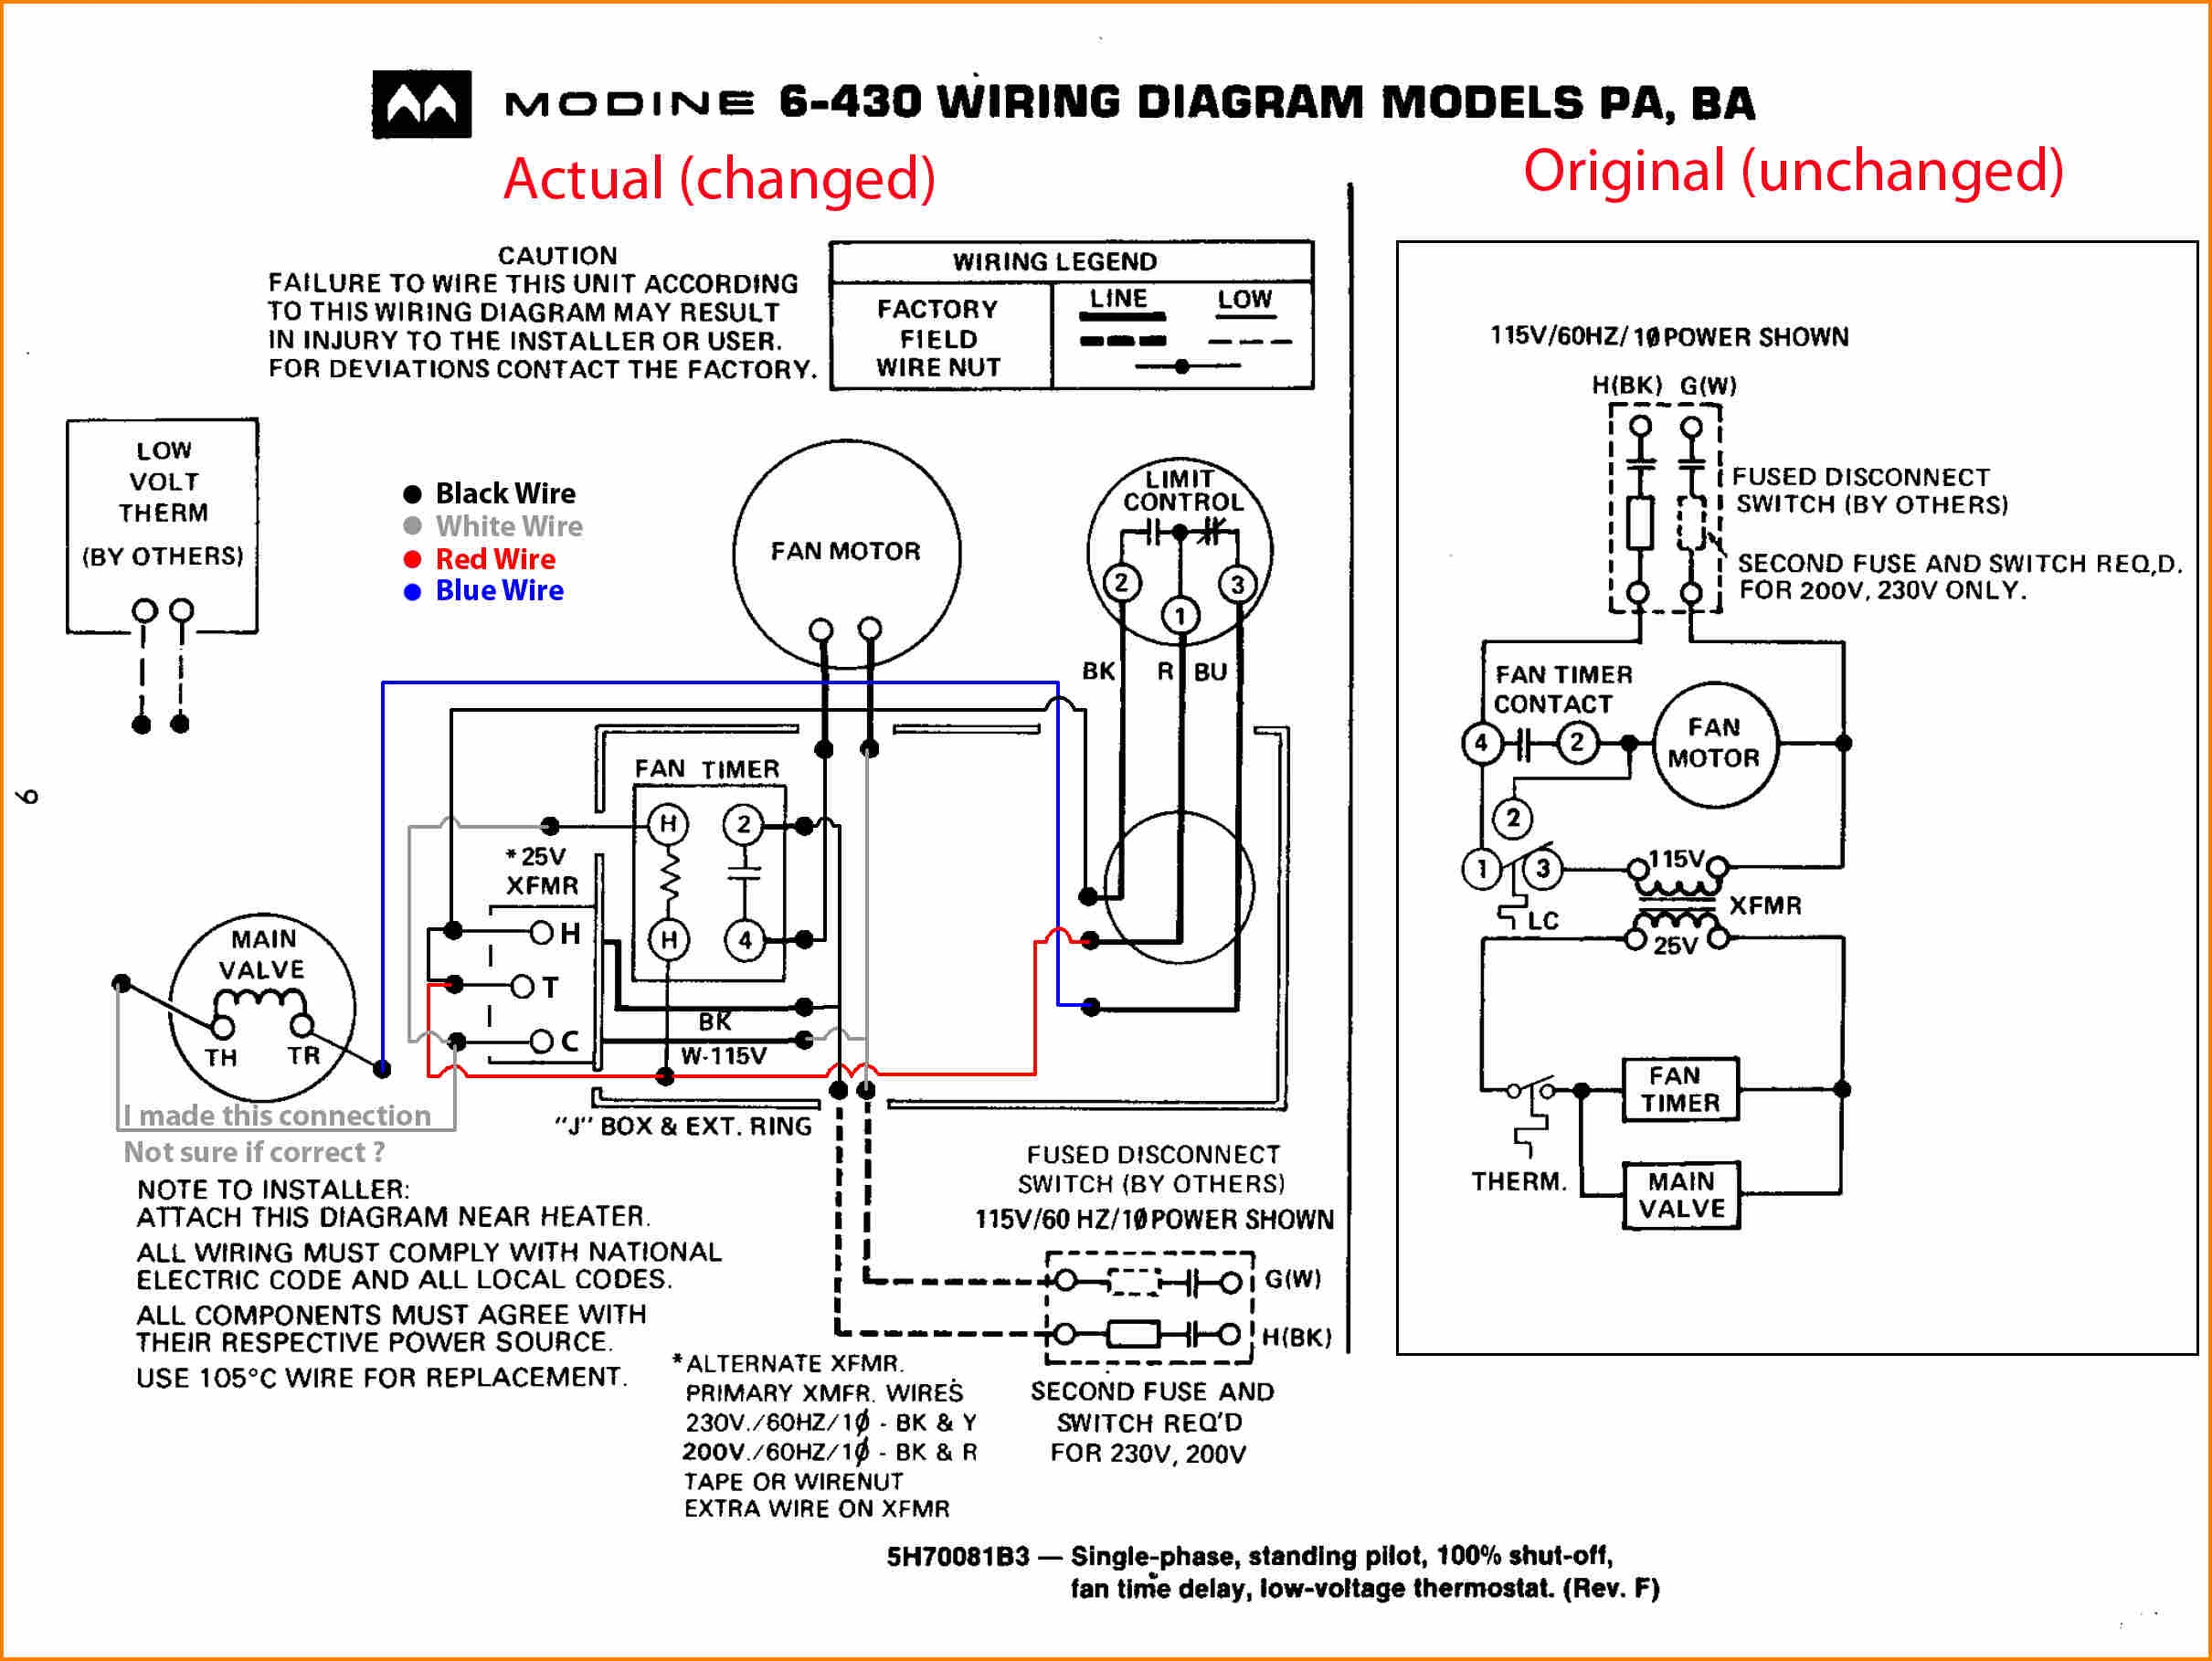 X13 Motor Schematic | Wiring Diagram on